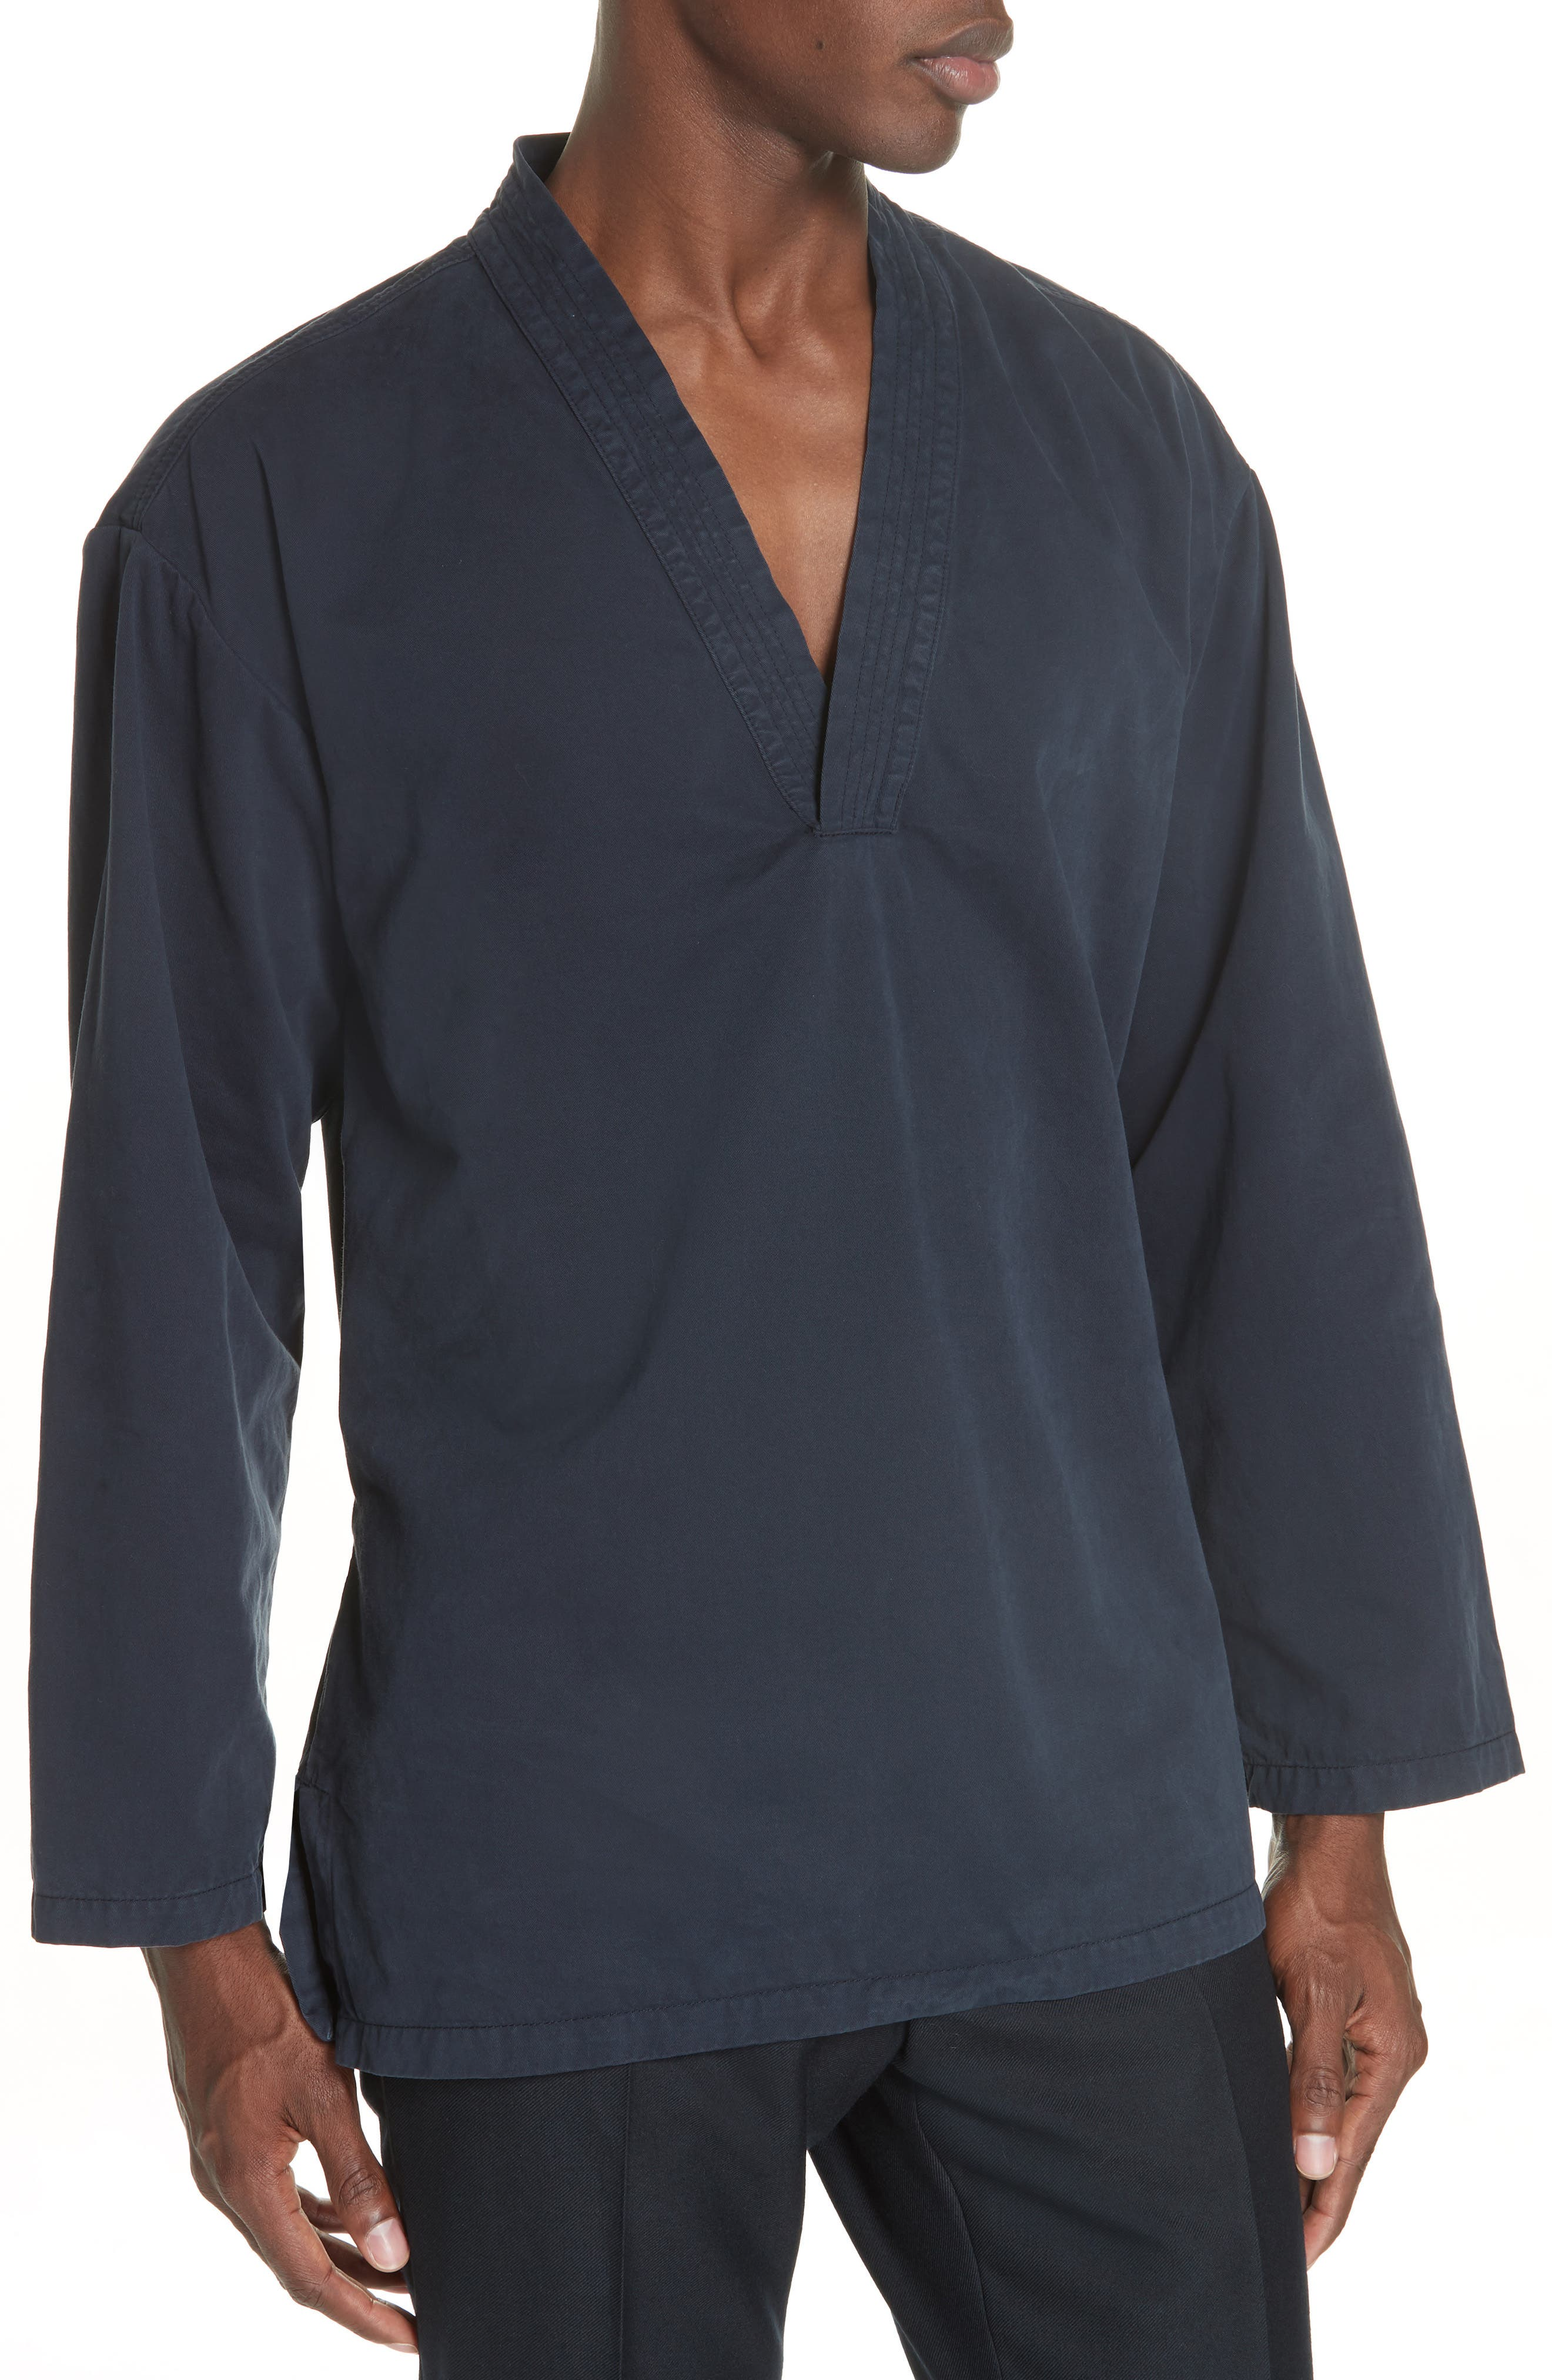 Canis Bis Kimono Pullover,                             Alternate thumbnail 4, color,                             NAVY 509